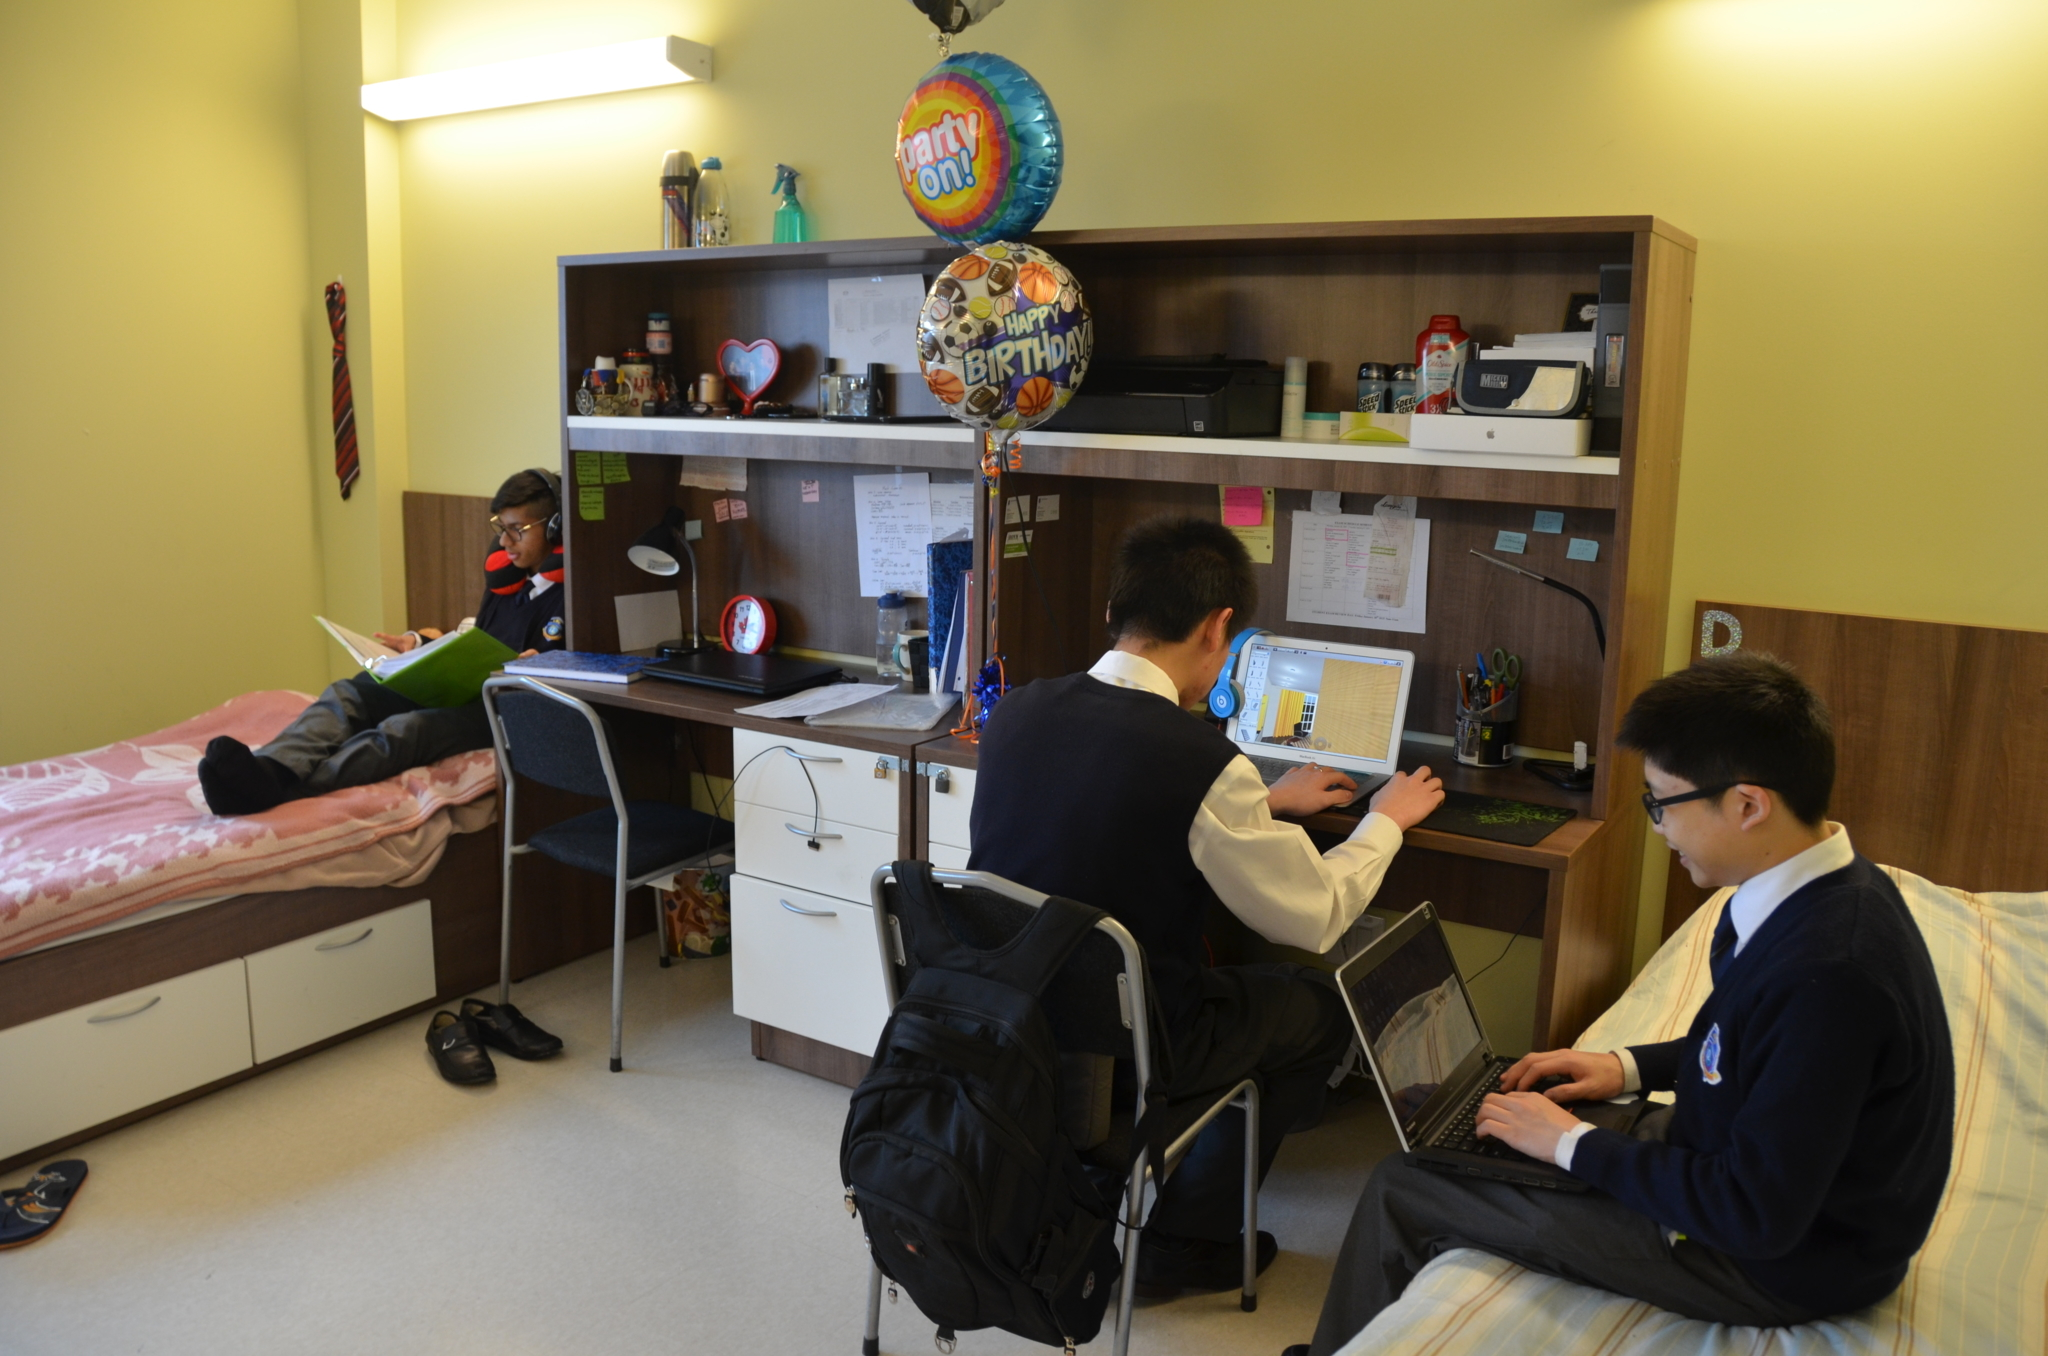 J Addison School in Markham: J. Addison Private Boarding School has its own fully-equipped dormitory for our international students.